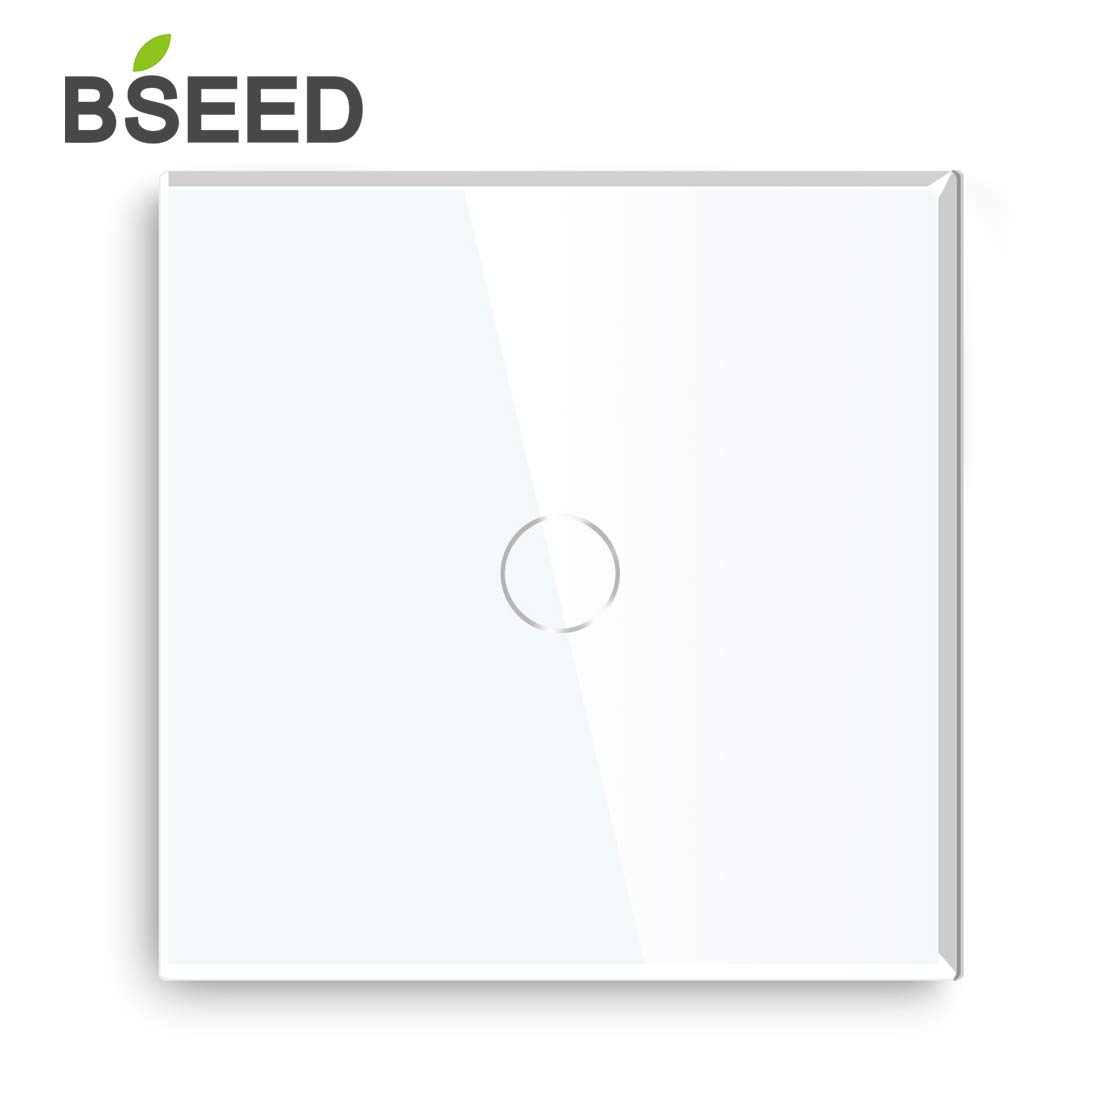 BSEED interruptor luz pared 3 Gang 1 Way interruptor tactil pared Blanco LED Interruptor de luz de pared remoto inal/ámbrico-con mando a distancia